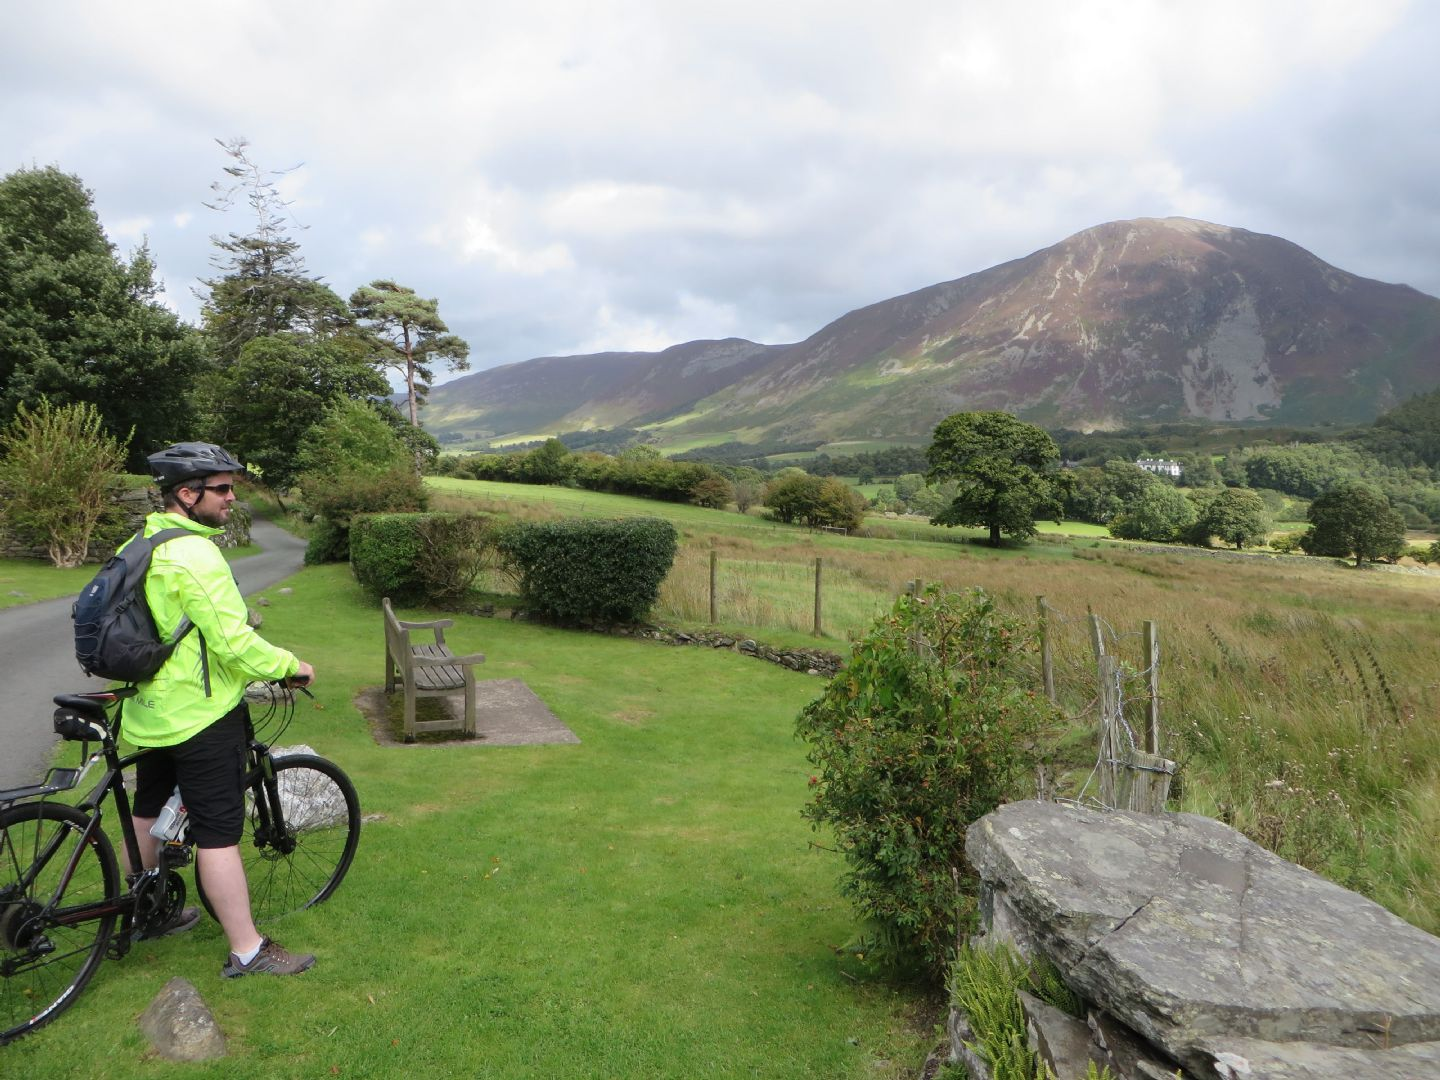 _Customer.47248.18344.jpg - UK - C2C - Coast to Coast 4 Days Cycling - Self-Guided Leisure Cycling Holiday - Leisure Cycling